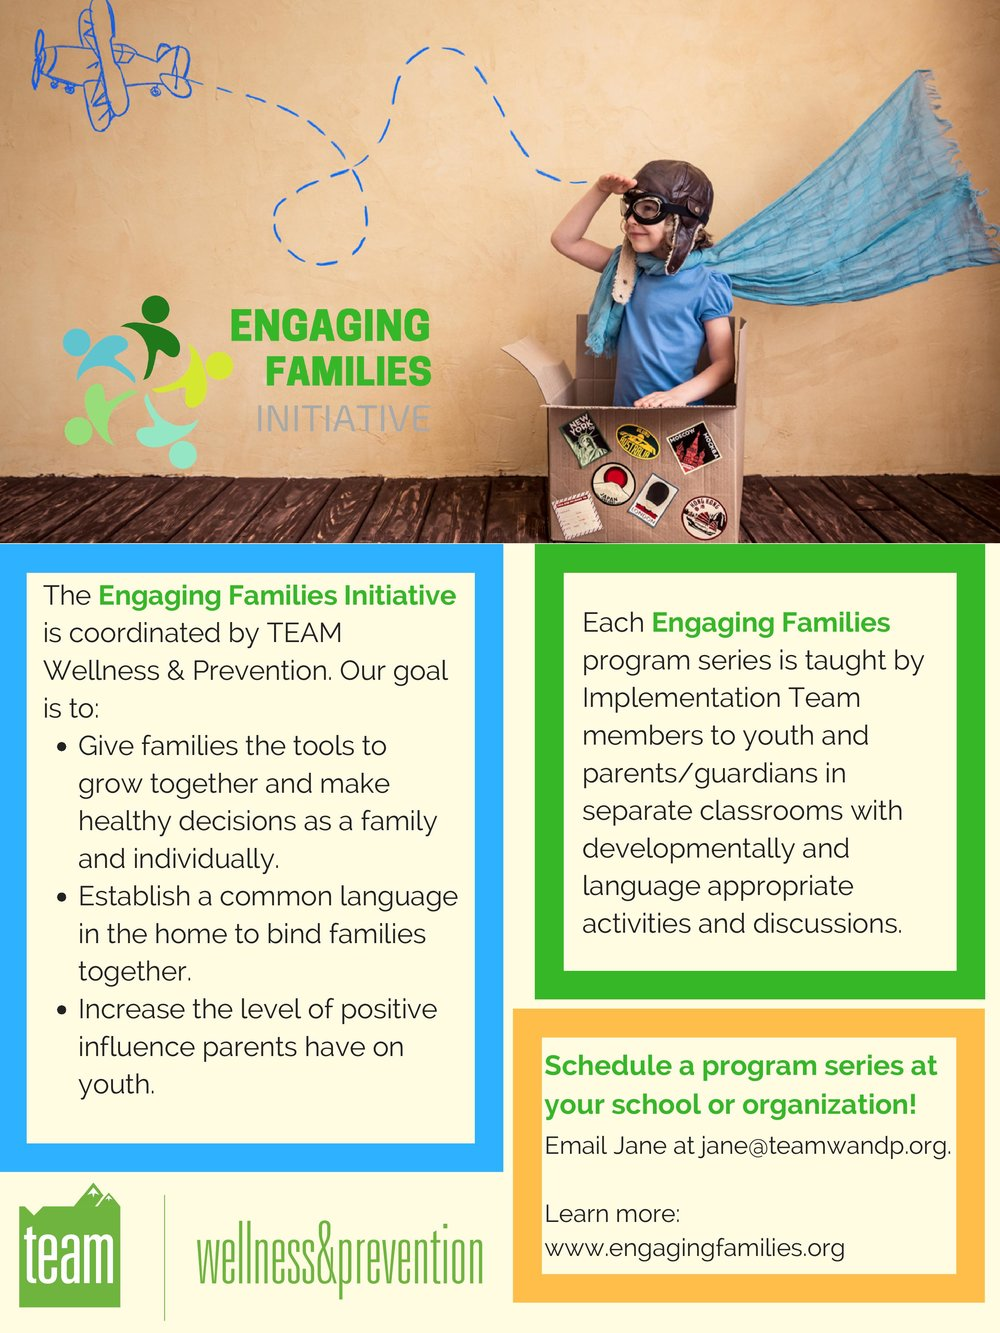 What's Engaging Families - The Engaging Families Initiative is an effort coordinated by TEAM Wellness & Prevention to-  Give families the tools to grow together and make health decisions as a family and individually.-  Establish a common language in the home to bind families together.-  Increase the level of positive influence parents have on youth.Through Engaging Families, TEAM collaborates with non-profits, school personnel, and community members deliver evidence-based or informed social emotional curriculum to youth and parents/guardians. Each Engaging Families program series is taught by trained facilitators to youth and parents/guardians in separate classrooms with developmentally and language appropriate activities and discussions.